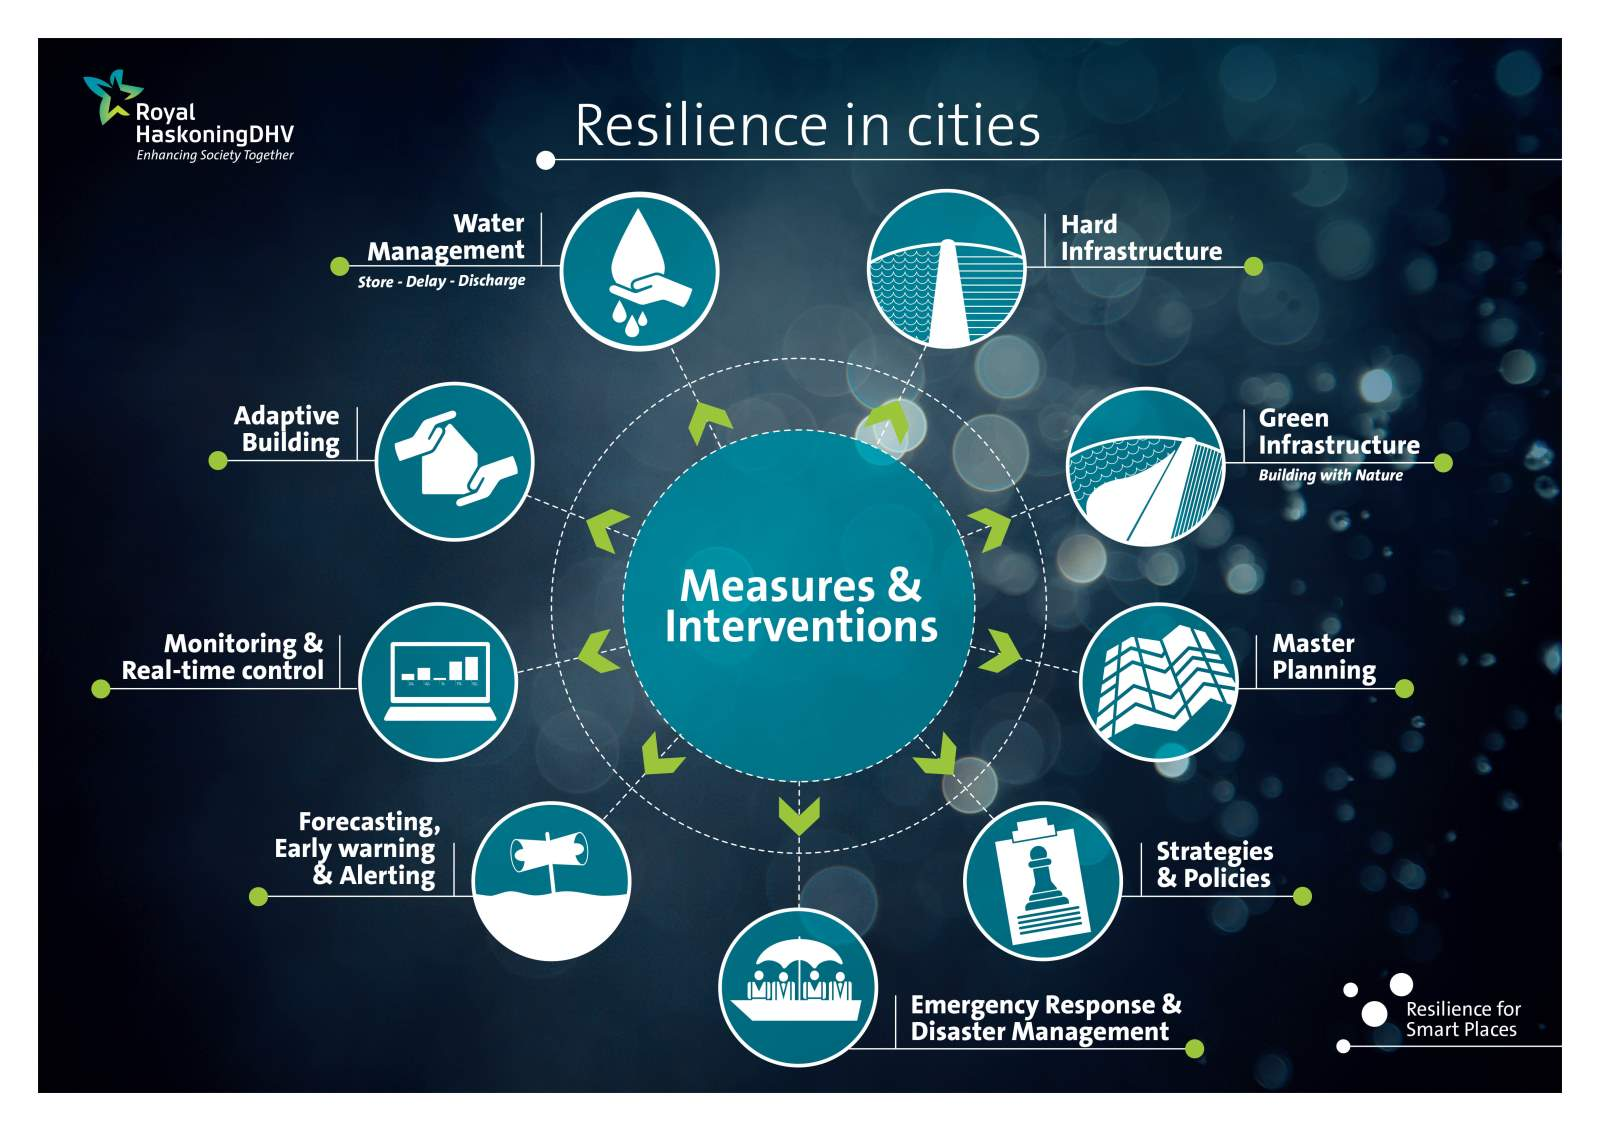 Resilience in cities, measurements & interventions